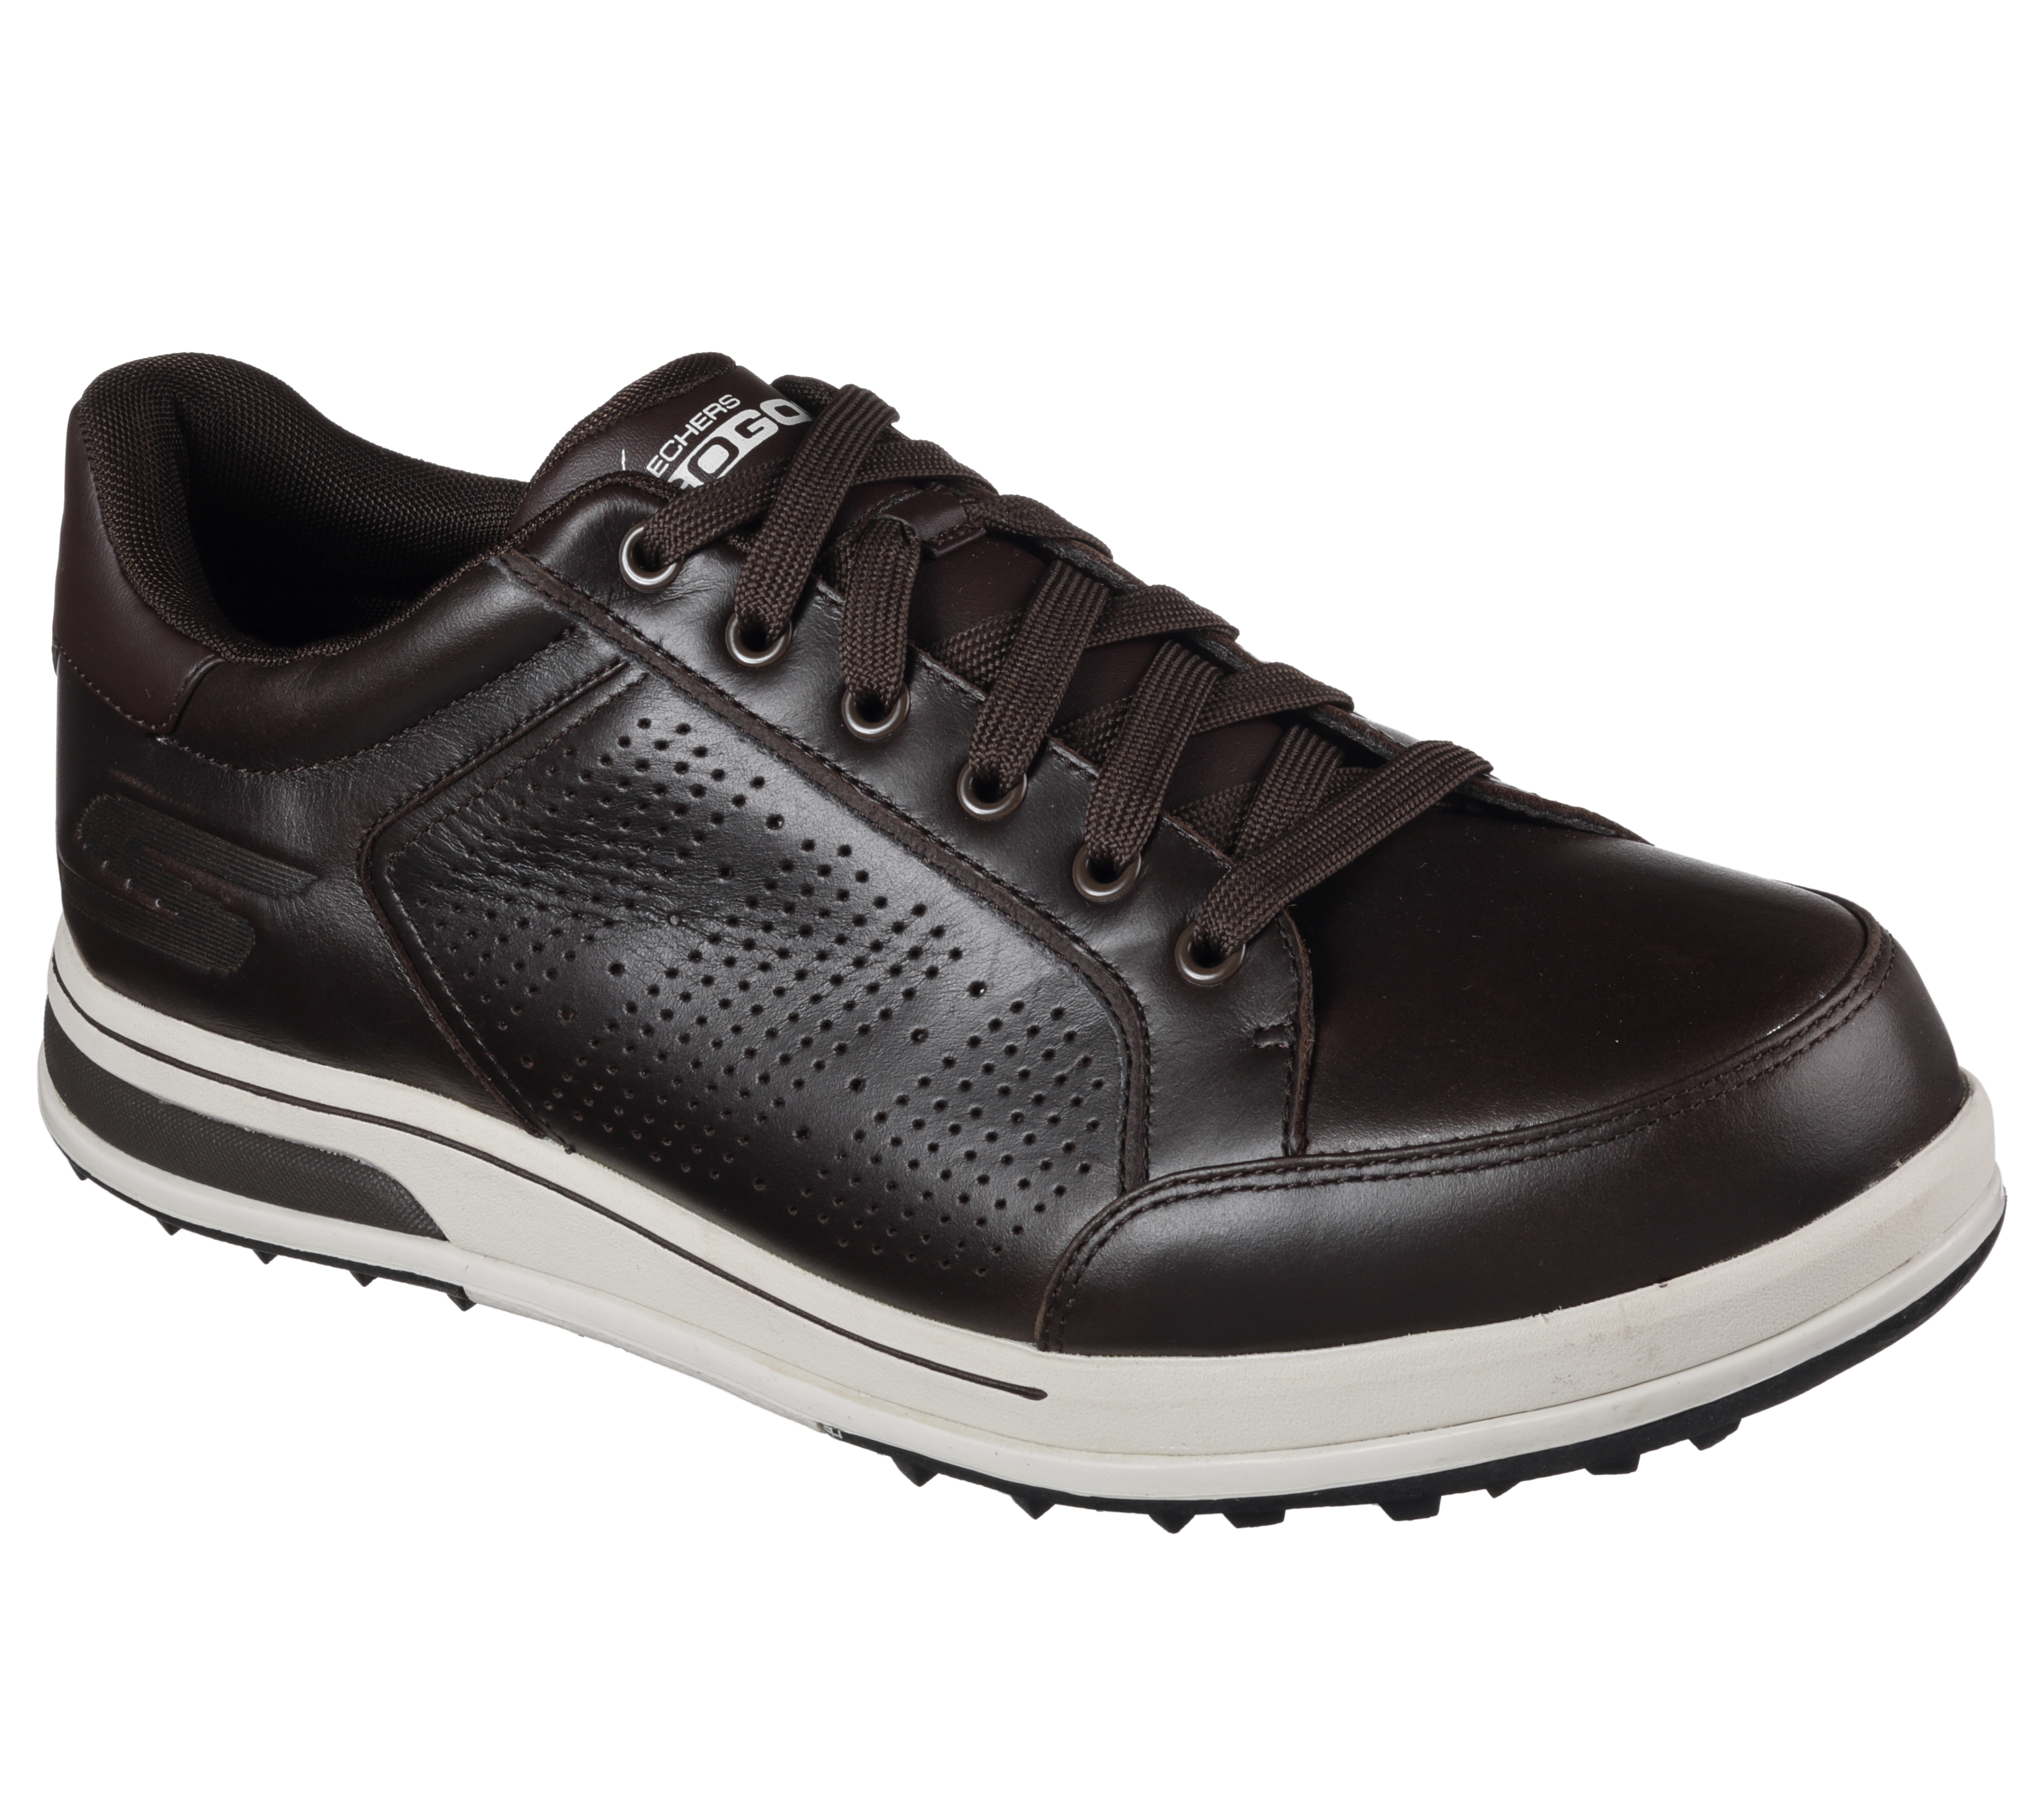 Why you should consider Skechers for your next pair of golf shoes ... 5fc34f25b0